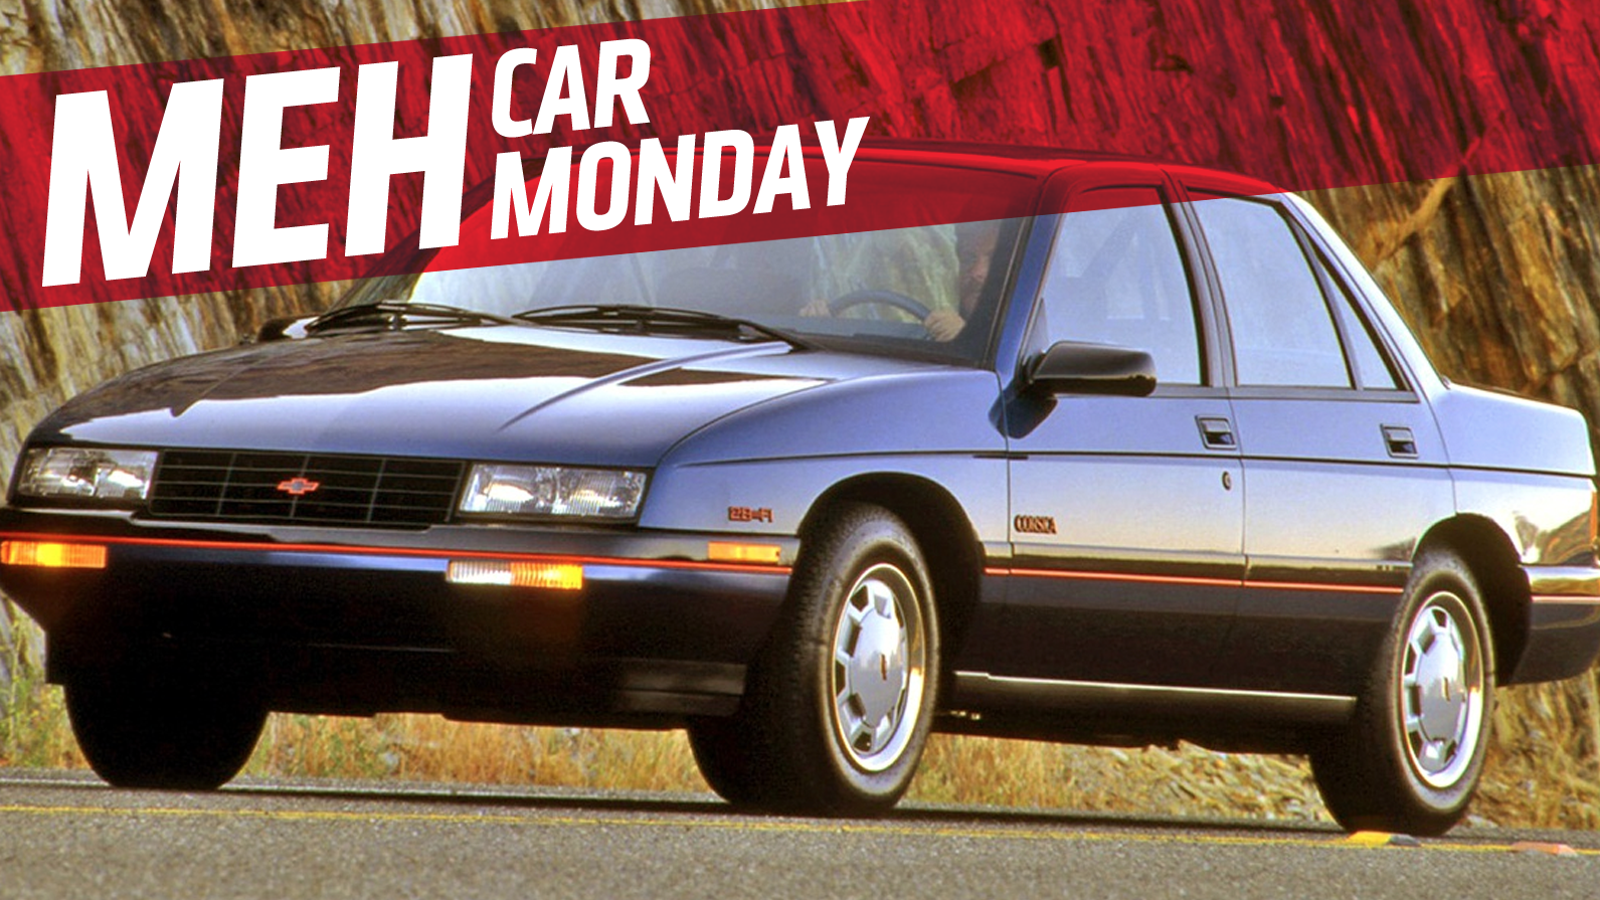 All Chevy chevy corsica : Meh Car Mondays Begins! Let Us Salute The Chevrolet Corsica